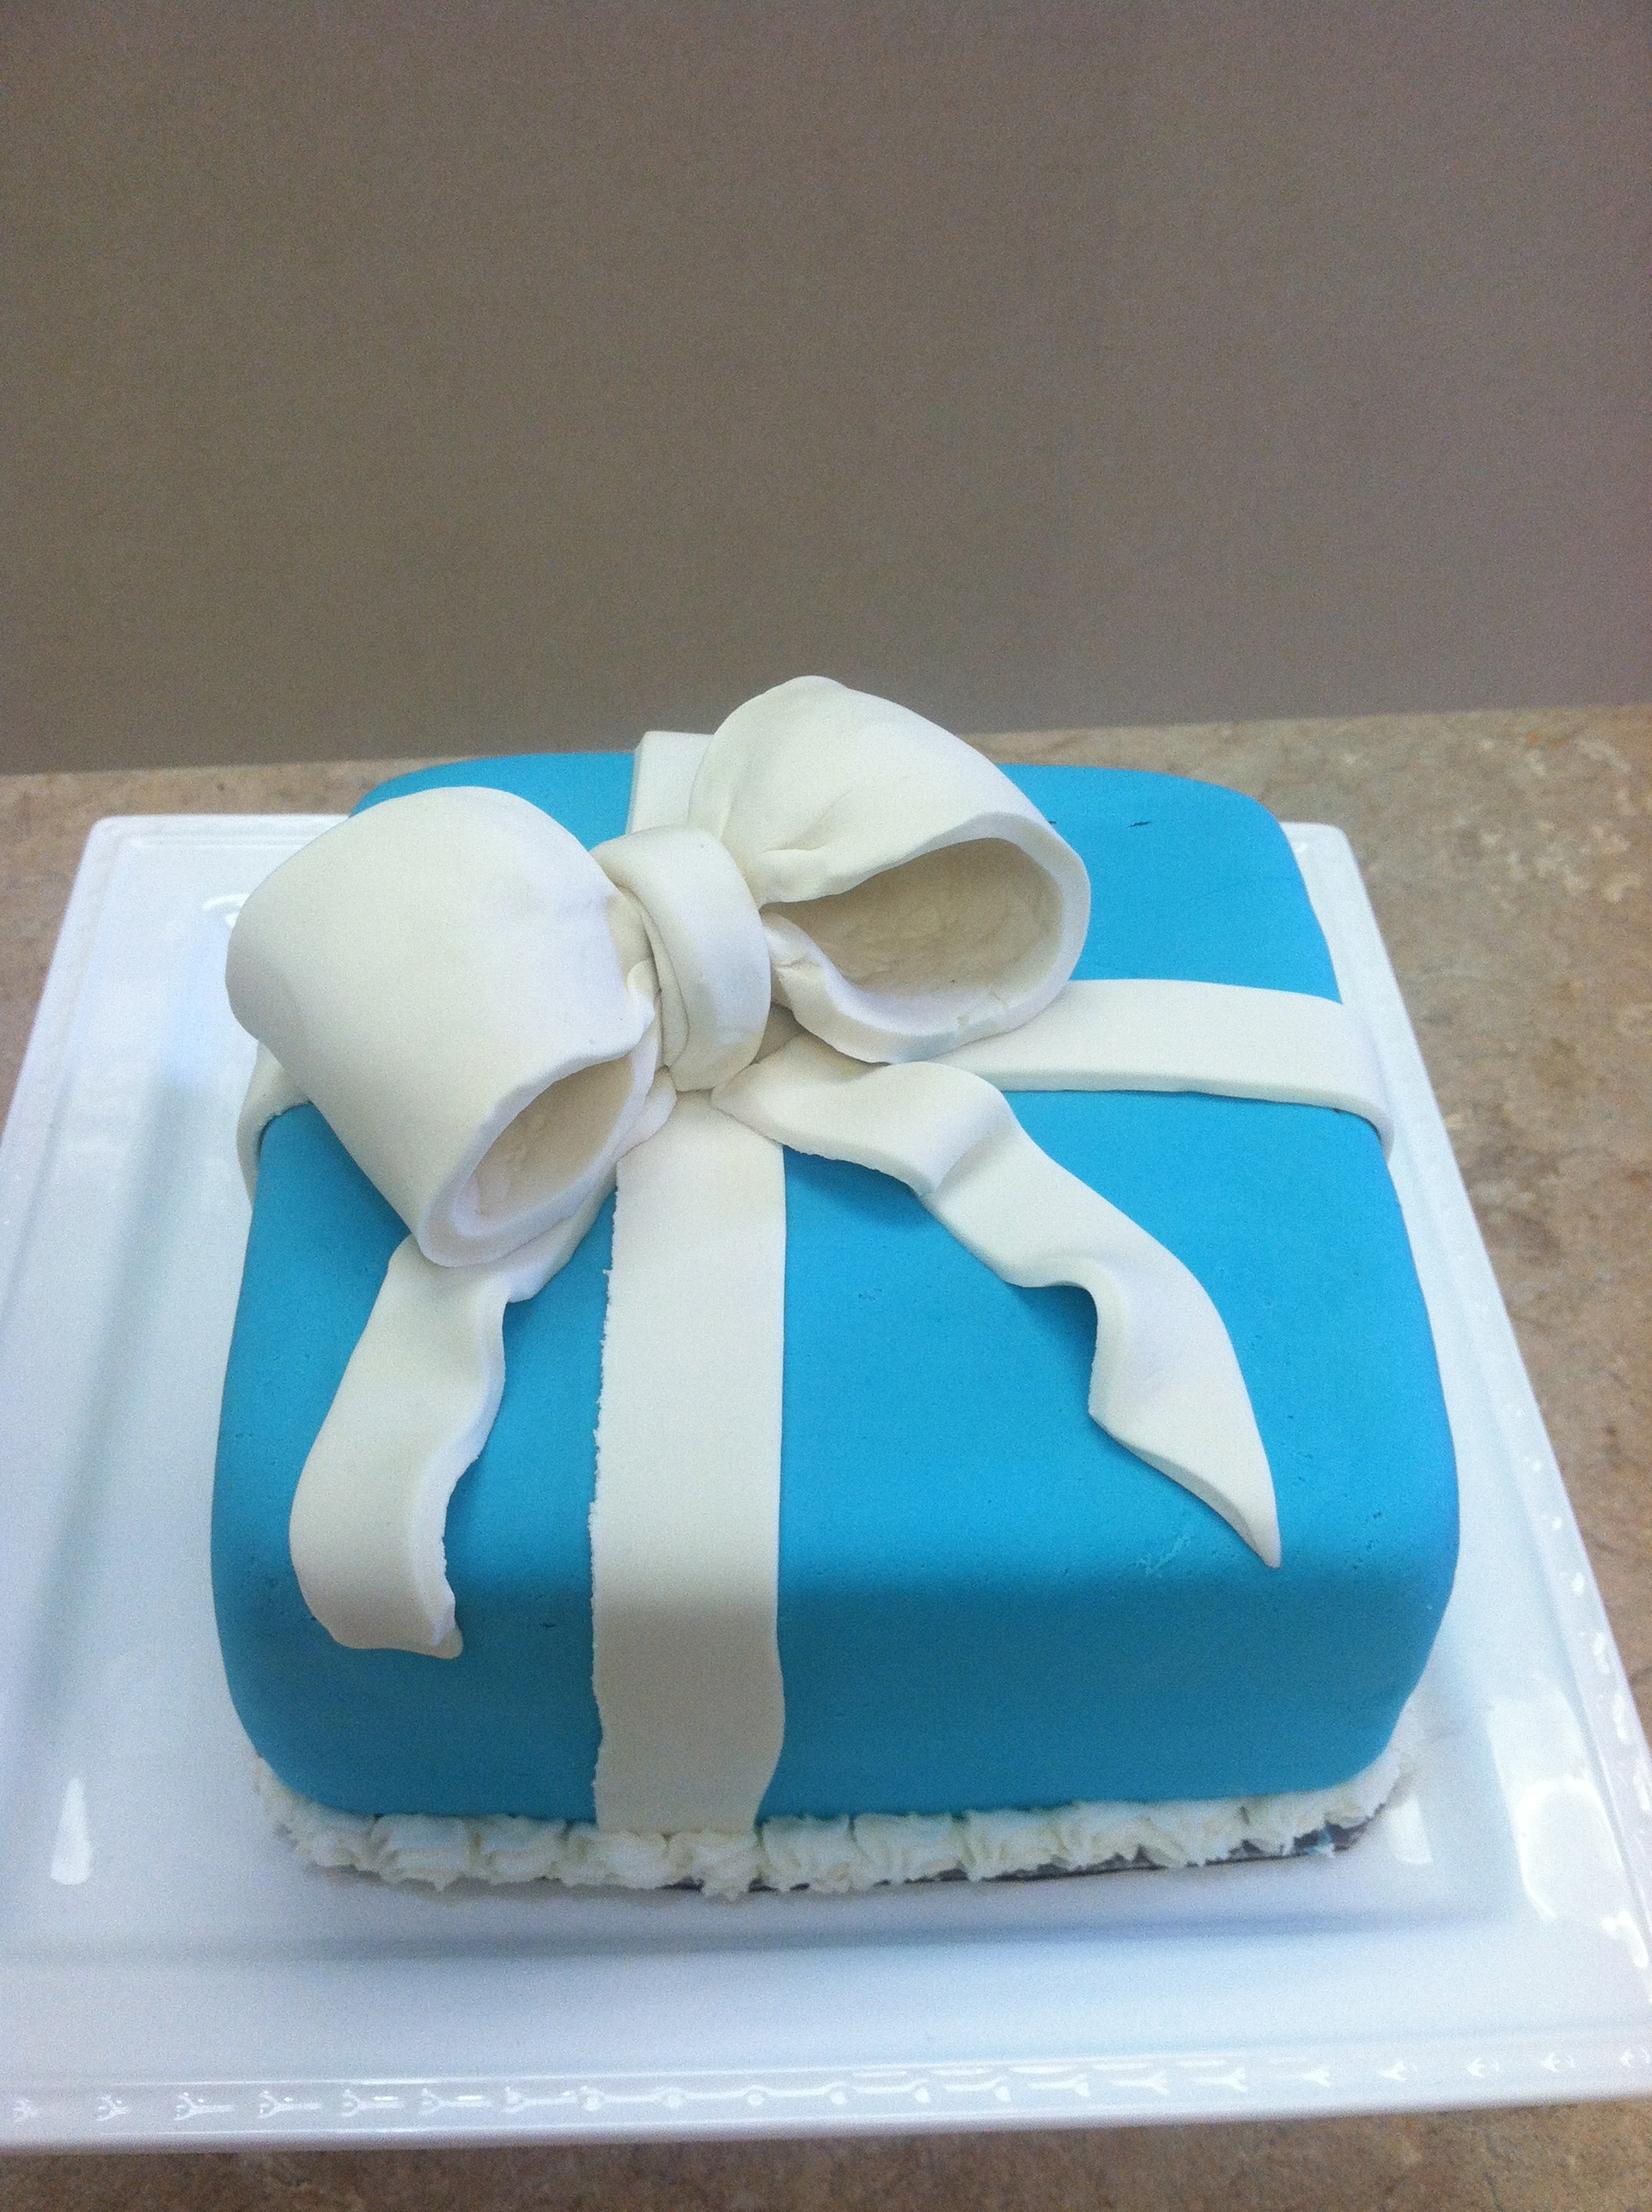 Tiffany Box Fondant Cake